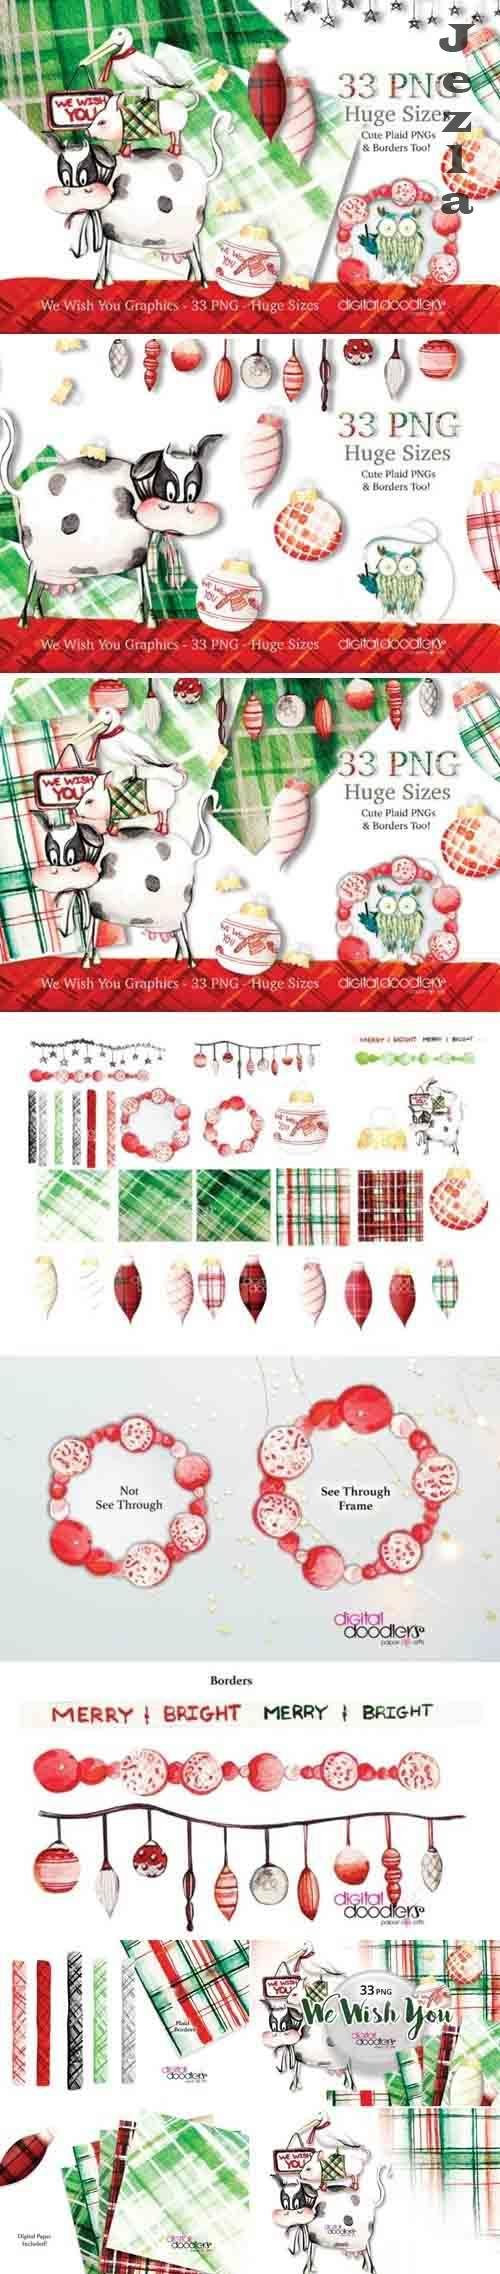 We Wish You -  Watercolor Christmas Graphic - 385181